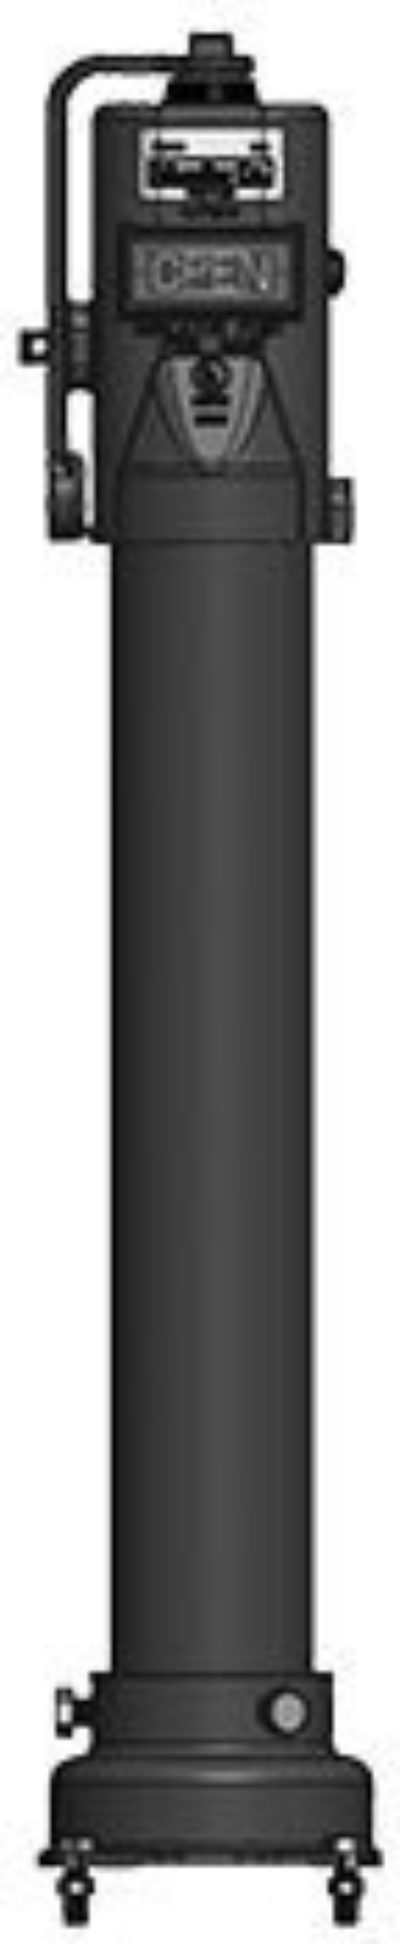 A-20808 Non-adjustable Indicator Post